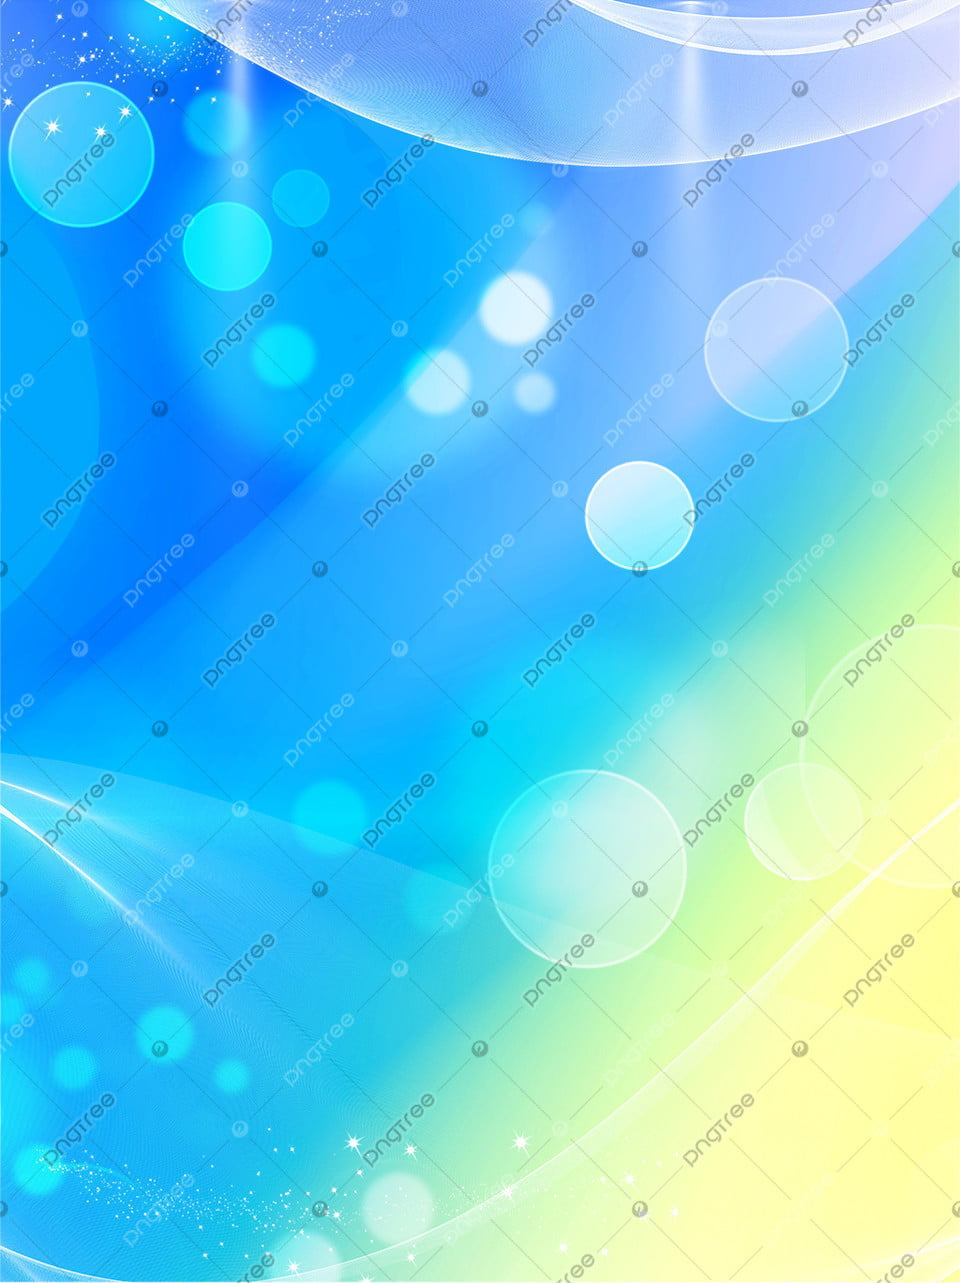 Background Cerah Png : background, cerah, Dreamy, Background, Bright, Fresh, Color, Display, Board,, Beautiful,, Dream,, Gorgeous, Image, Download